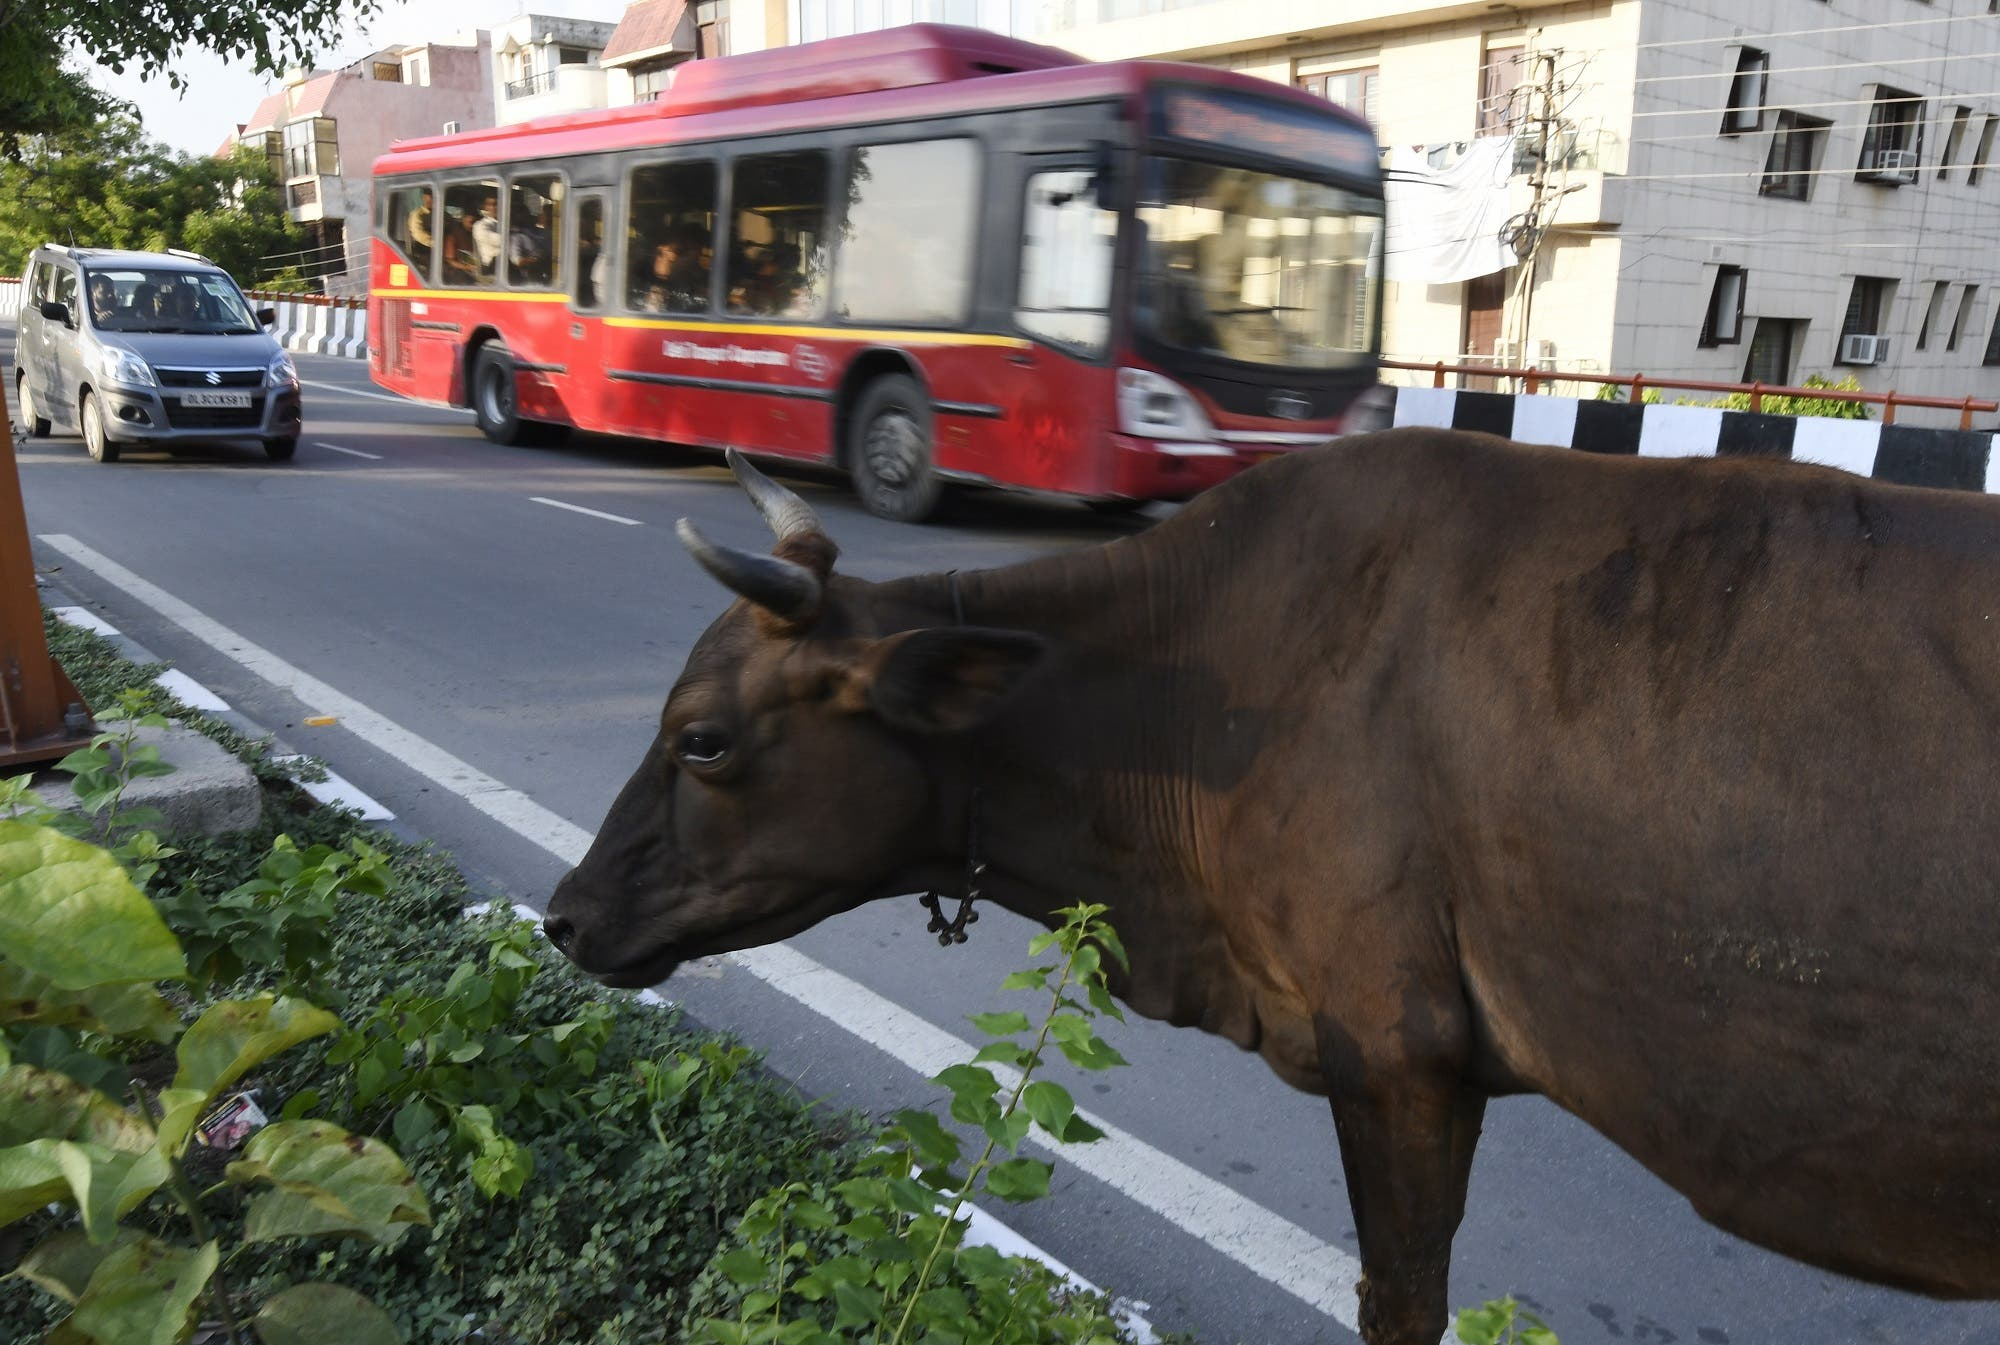 This July 20, 2017 photograph shows a cow eating vegetation on the side of the road in New Delhi. (AFP)